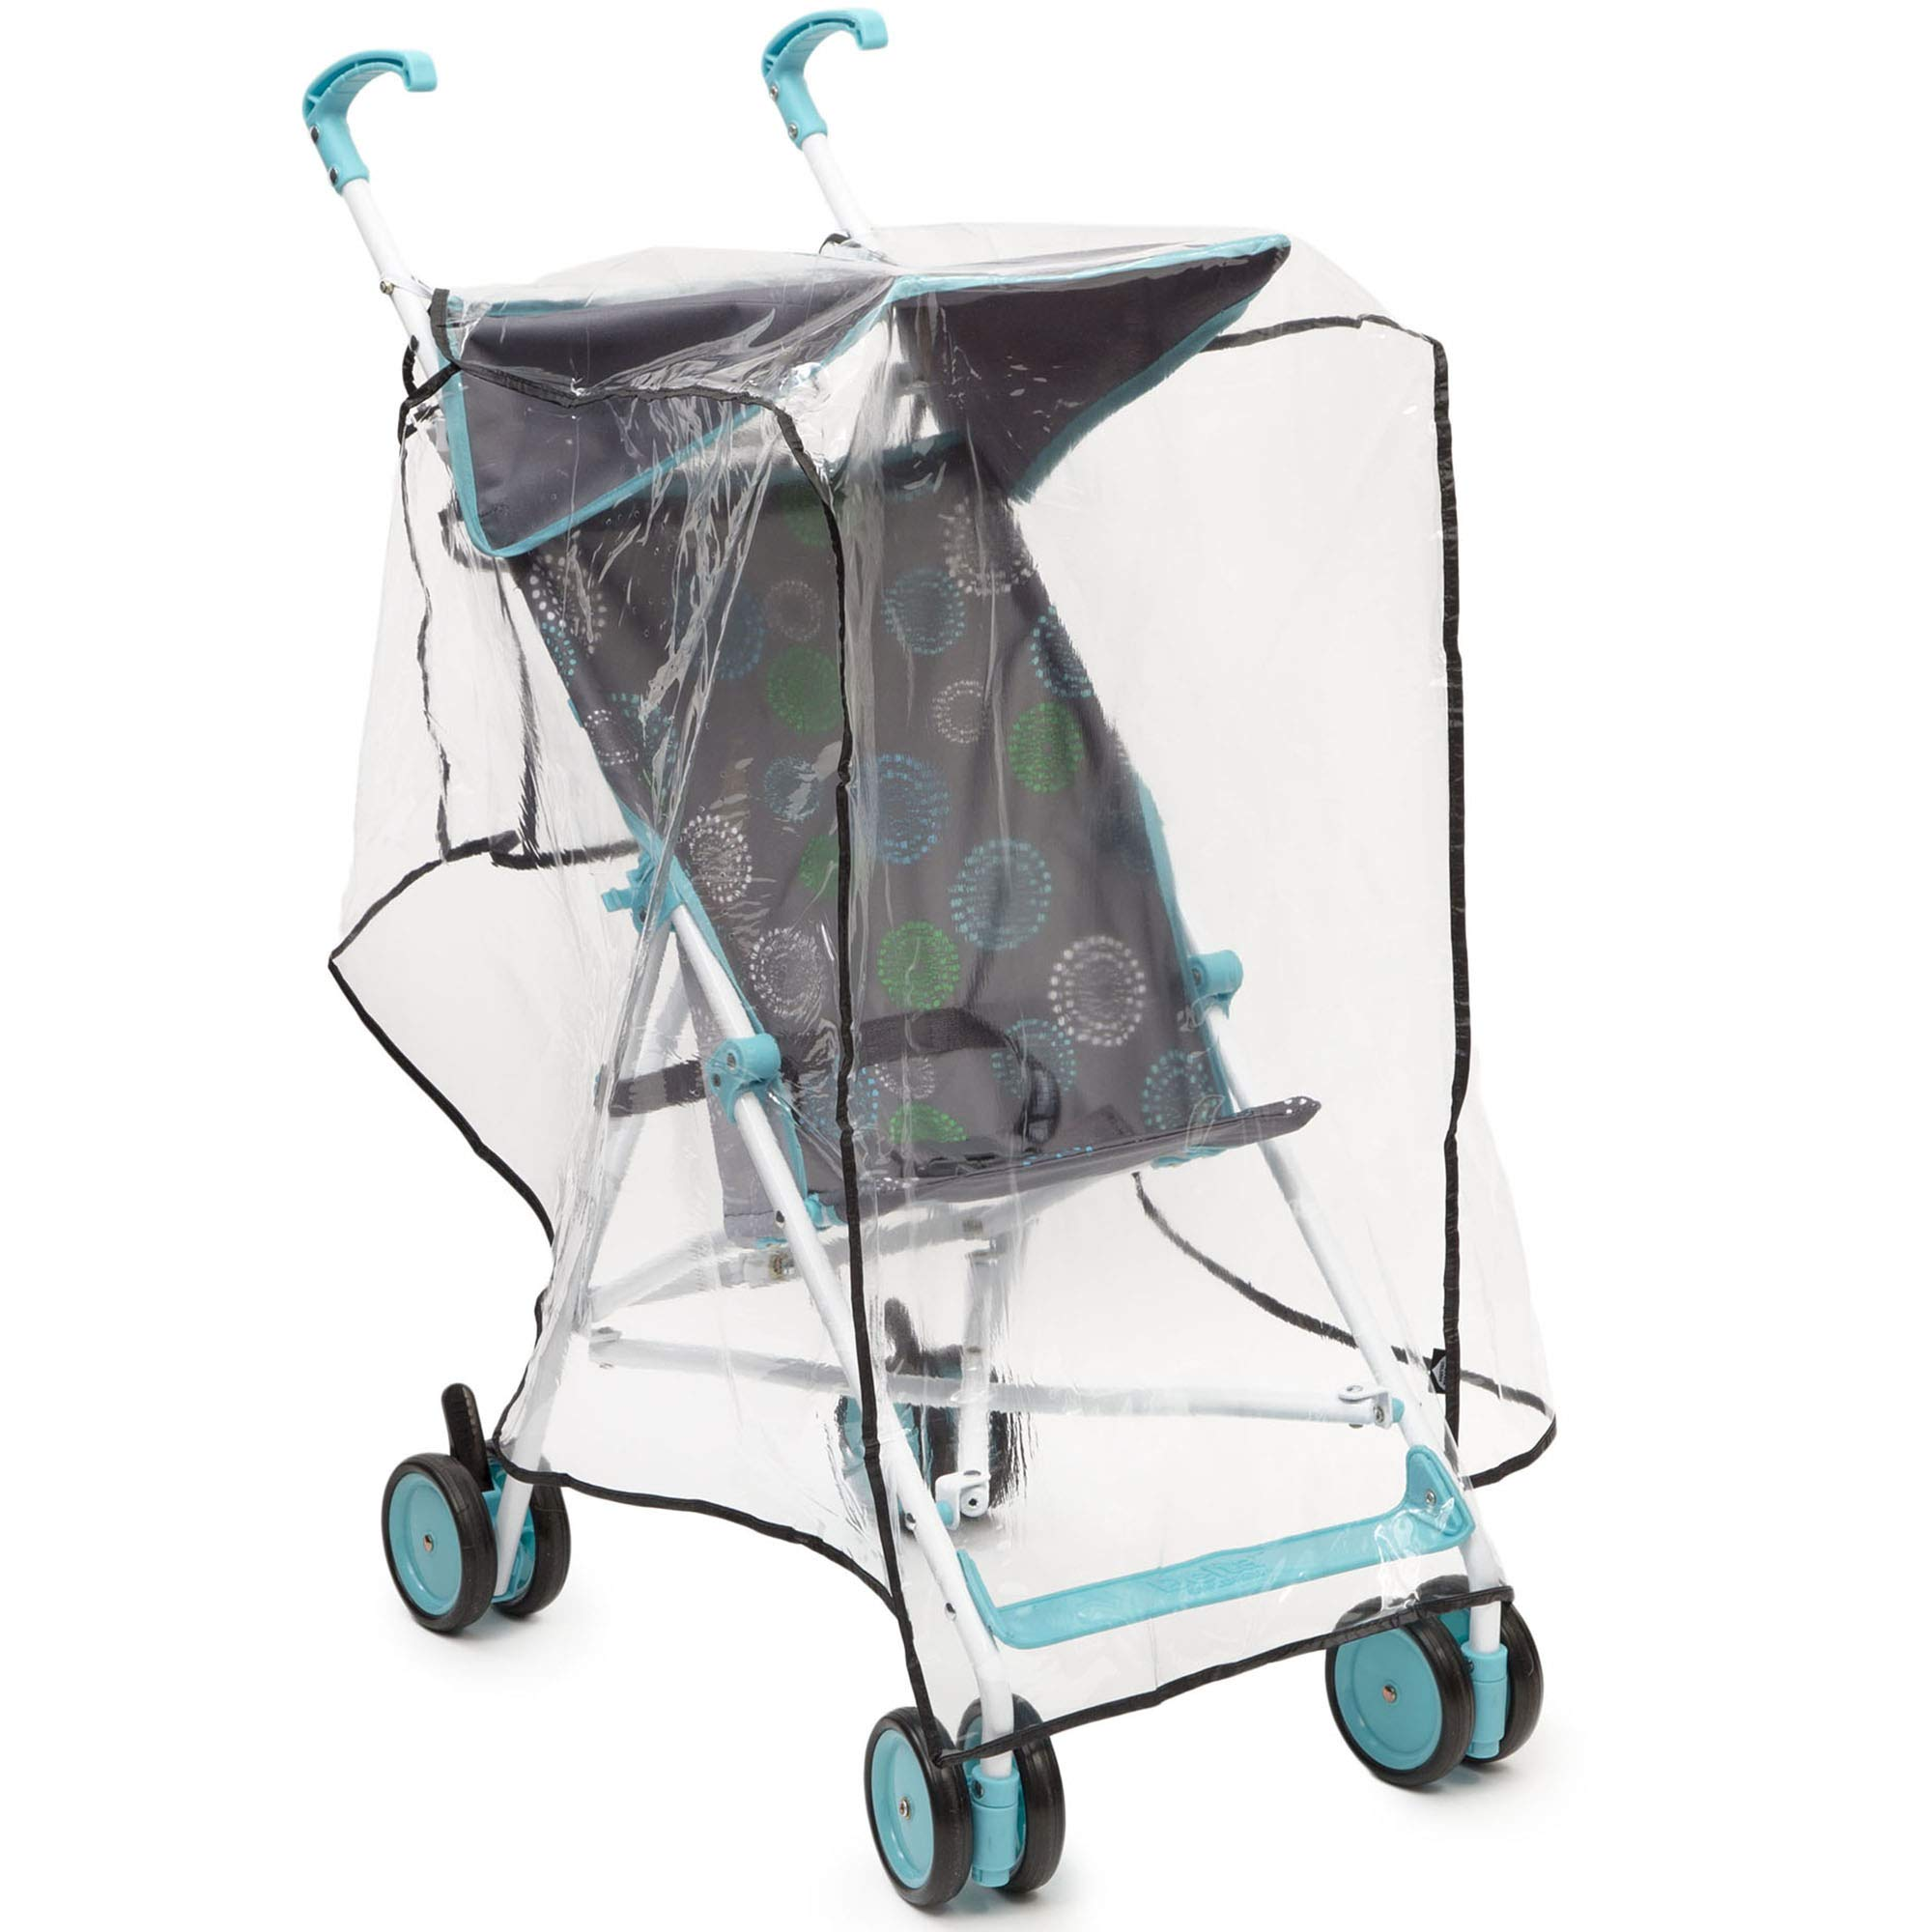 Delta Children Umbrella Stroller Rain Cover | Universal Size | Weather Shield Protects Your Baby from Rain, Wind, Snow, Sleet or Insects | Ventilated | Storage Pocket Included (Clear) by Delta Children (Image #1)